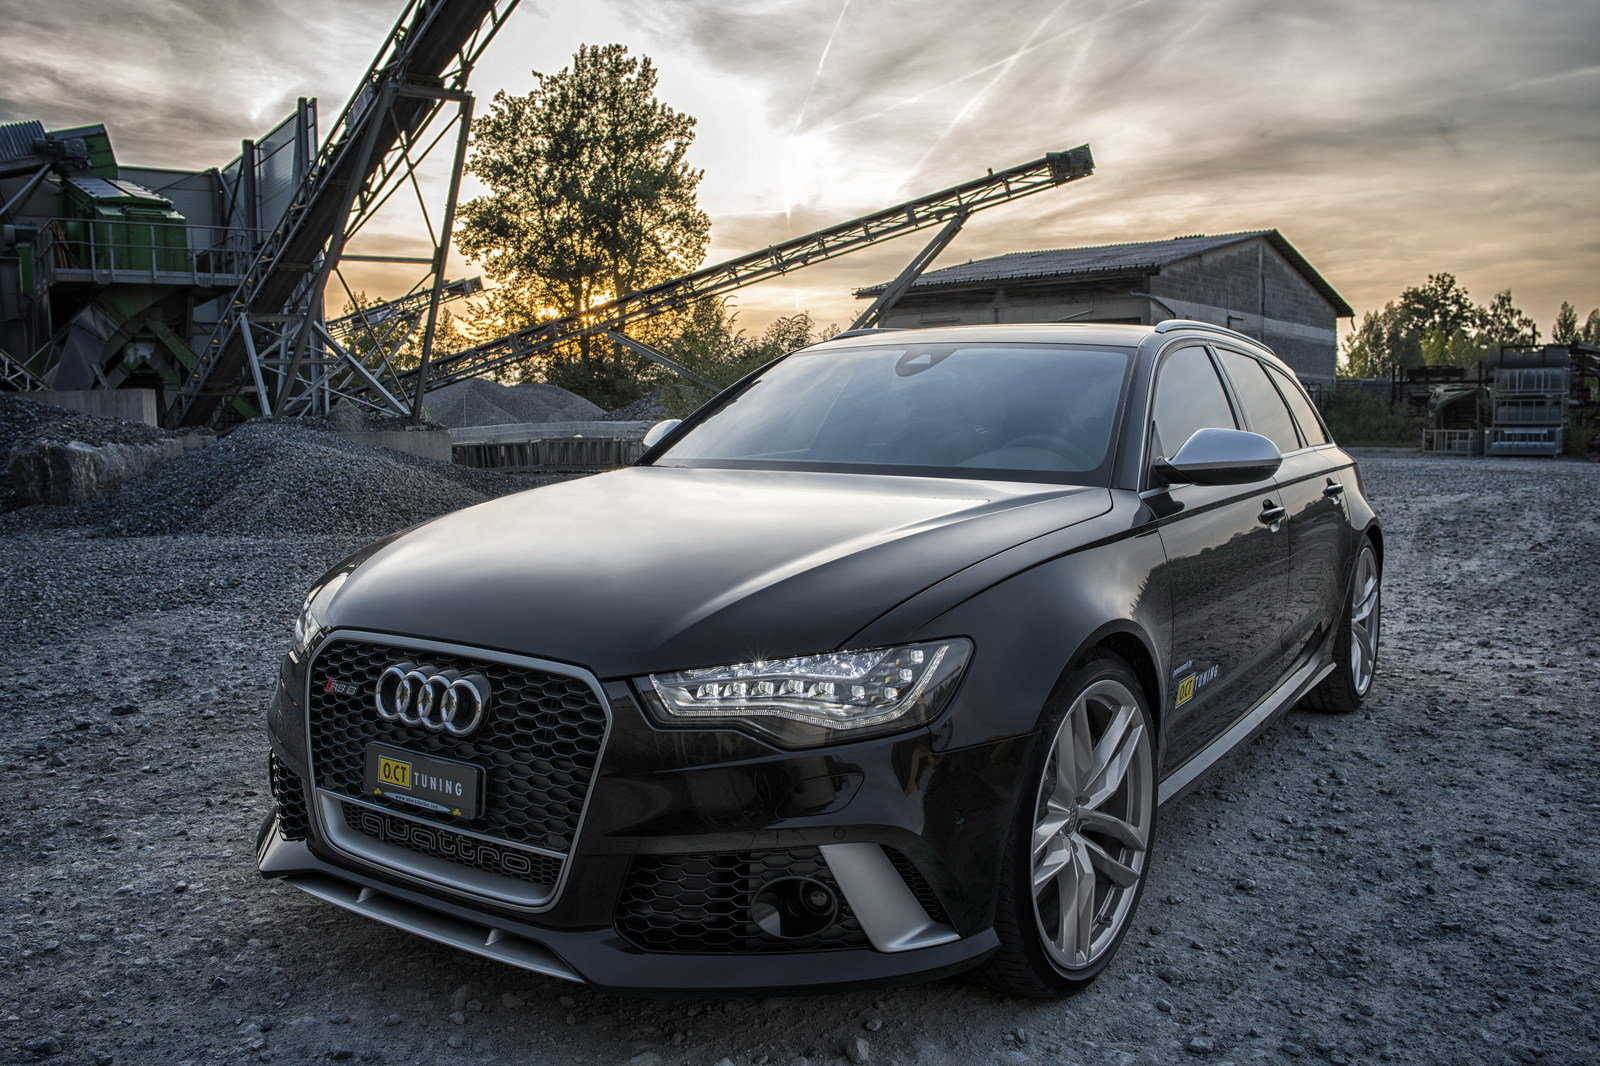 2013 audi rs6 by oct tuning review top speed. Black Bedroom Furniture Sets. Home Design Ideas